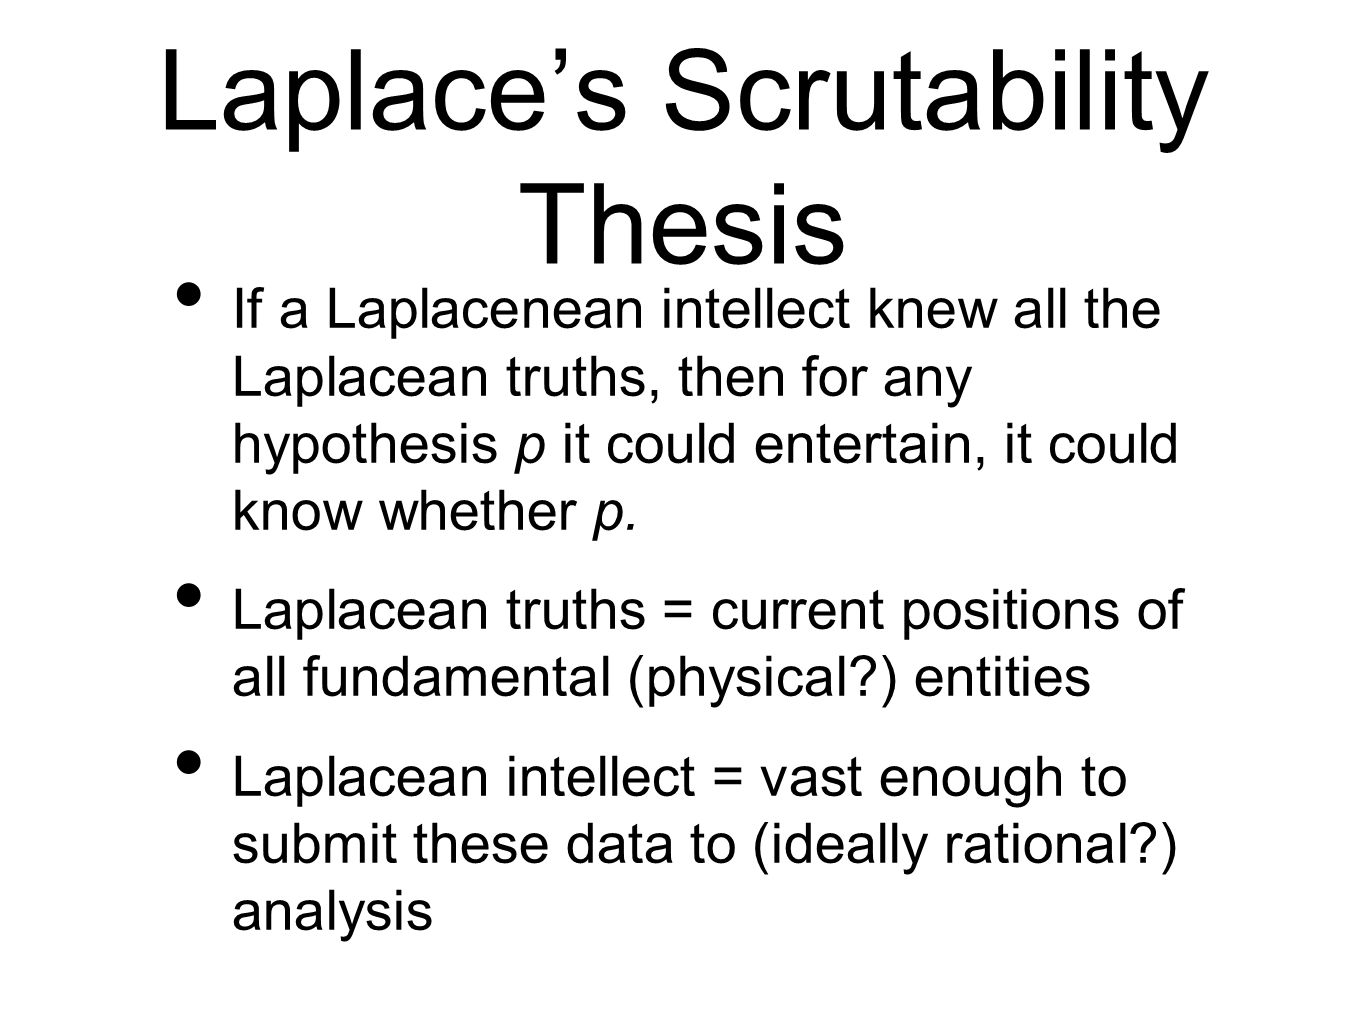 Laplace's Scrutability Thesis